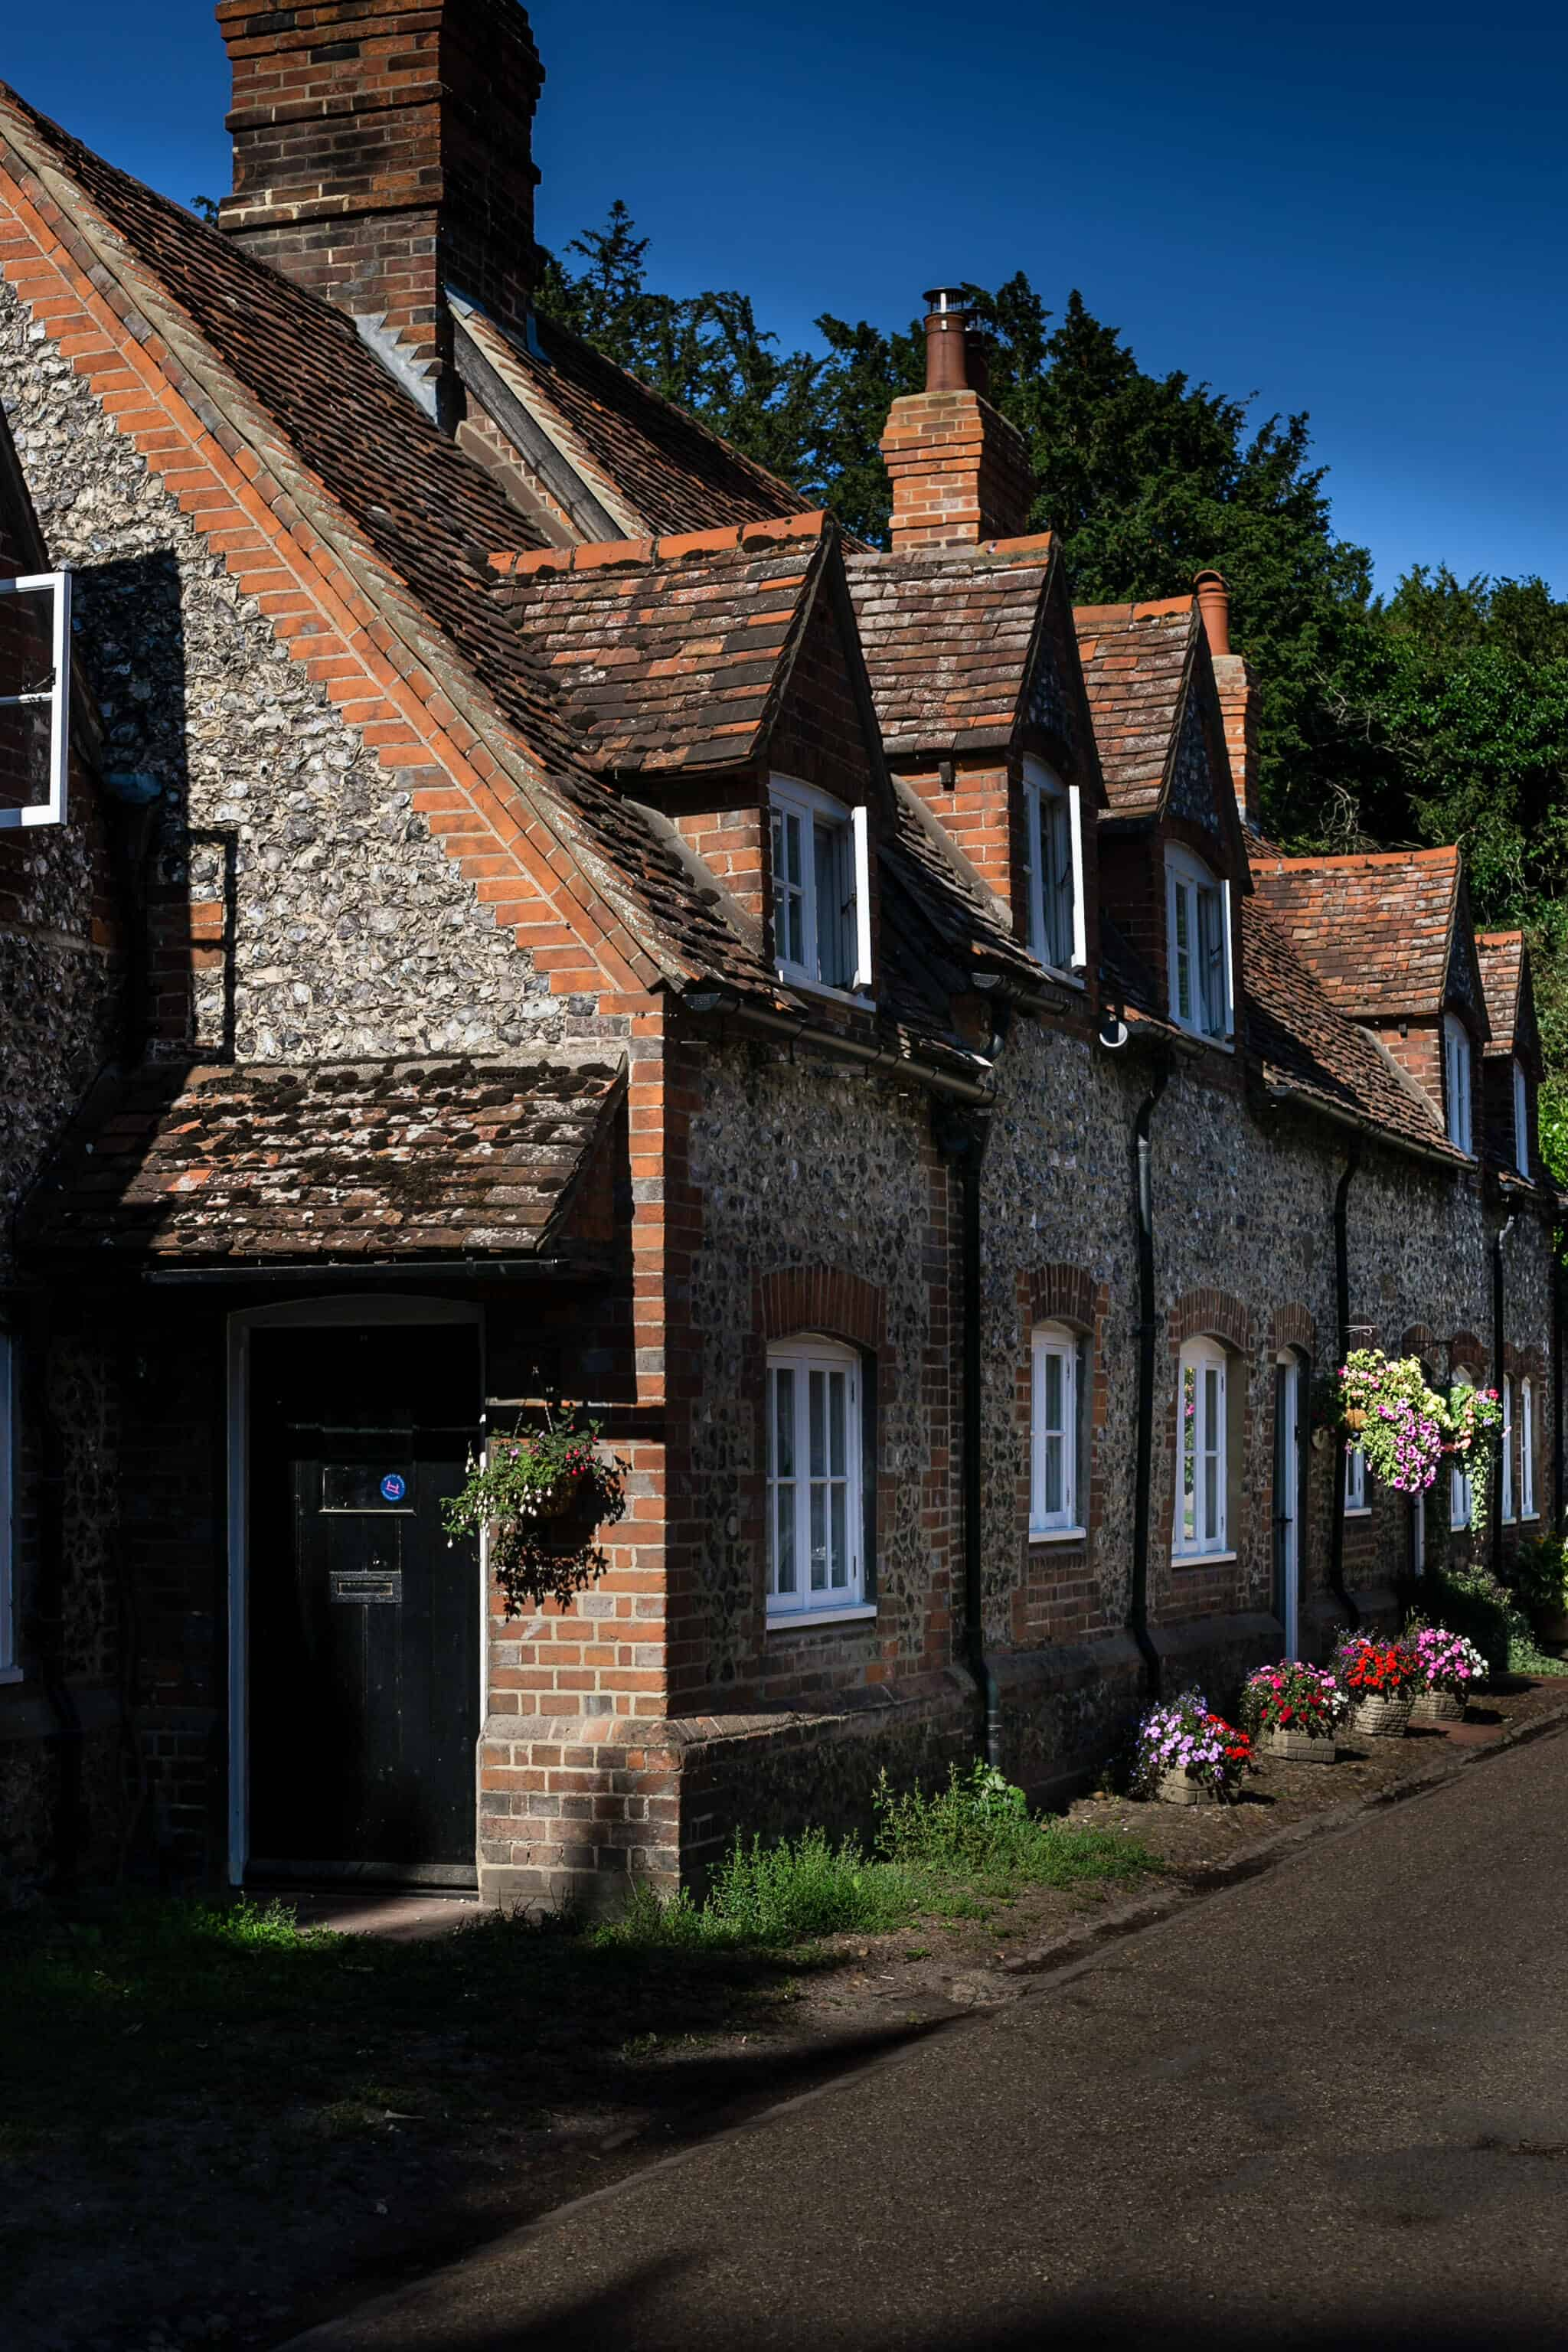 Picturesque village of Hambleden | via @annabanana.co